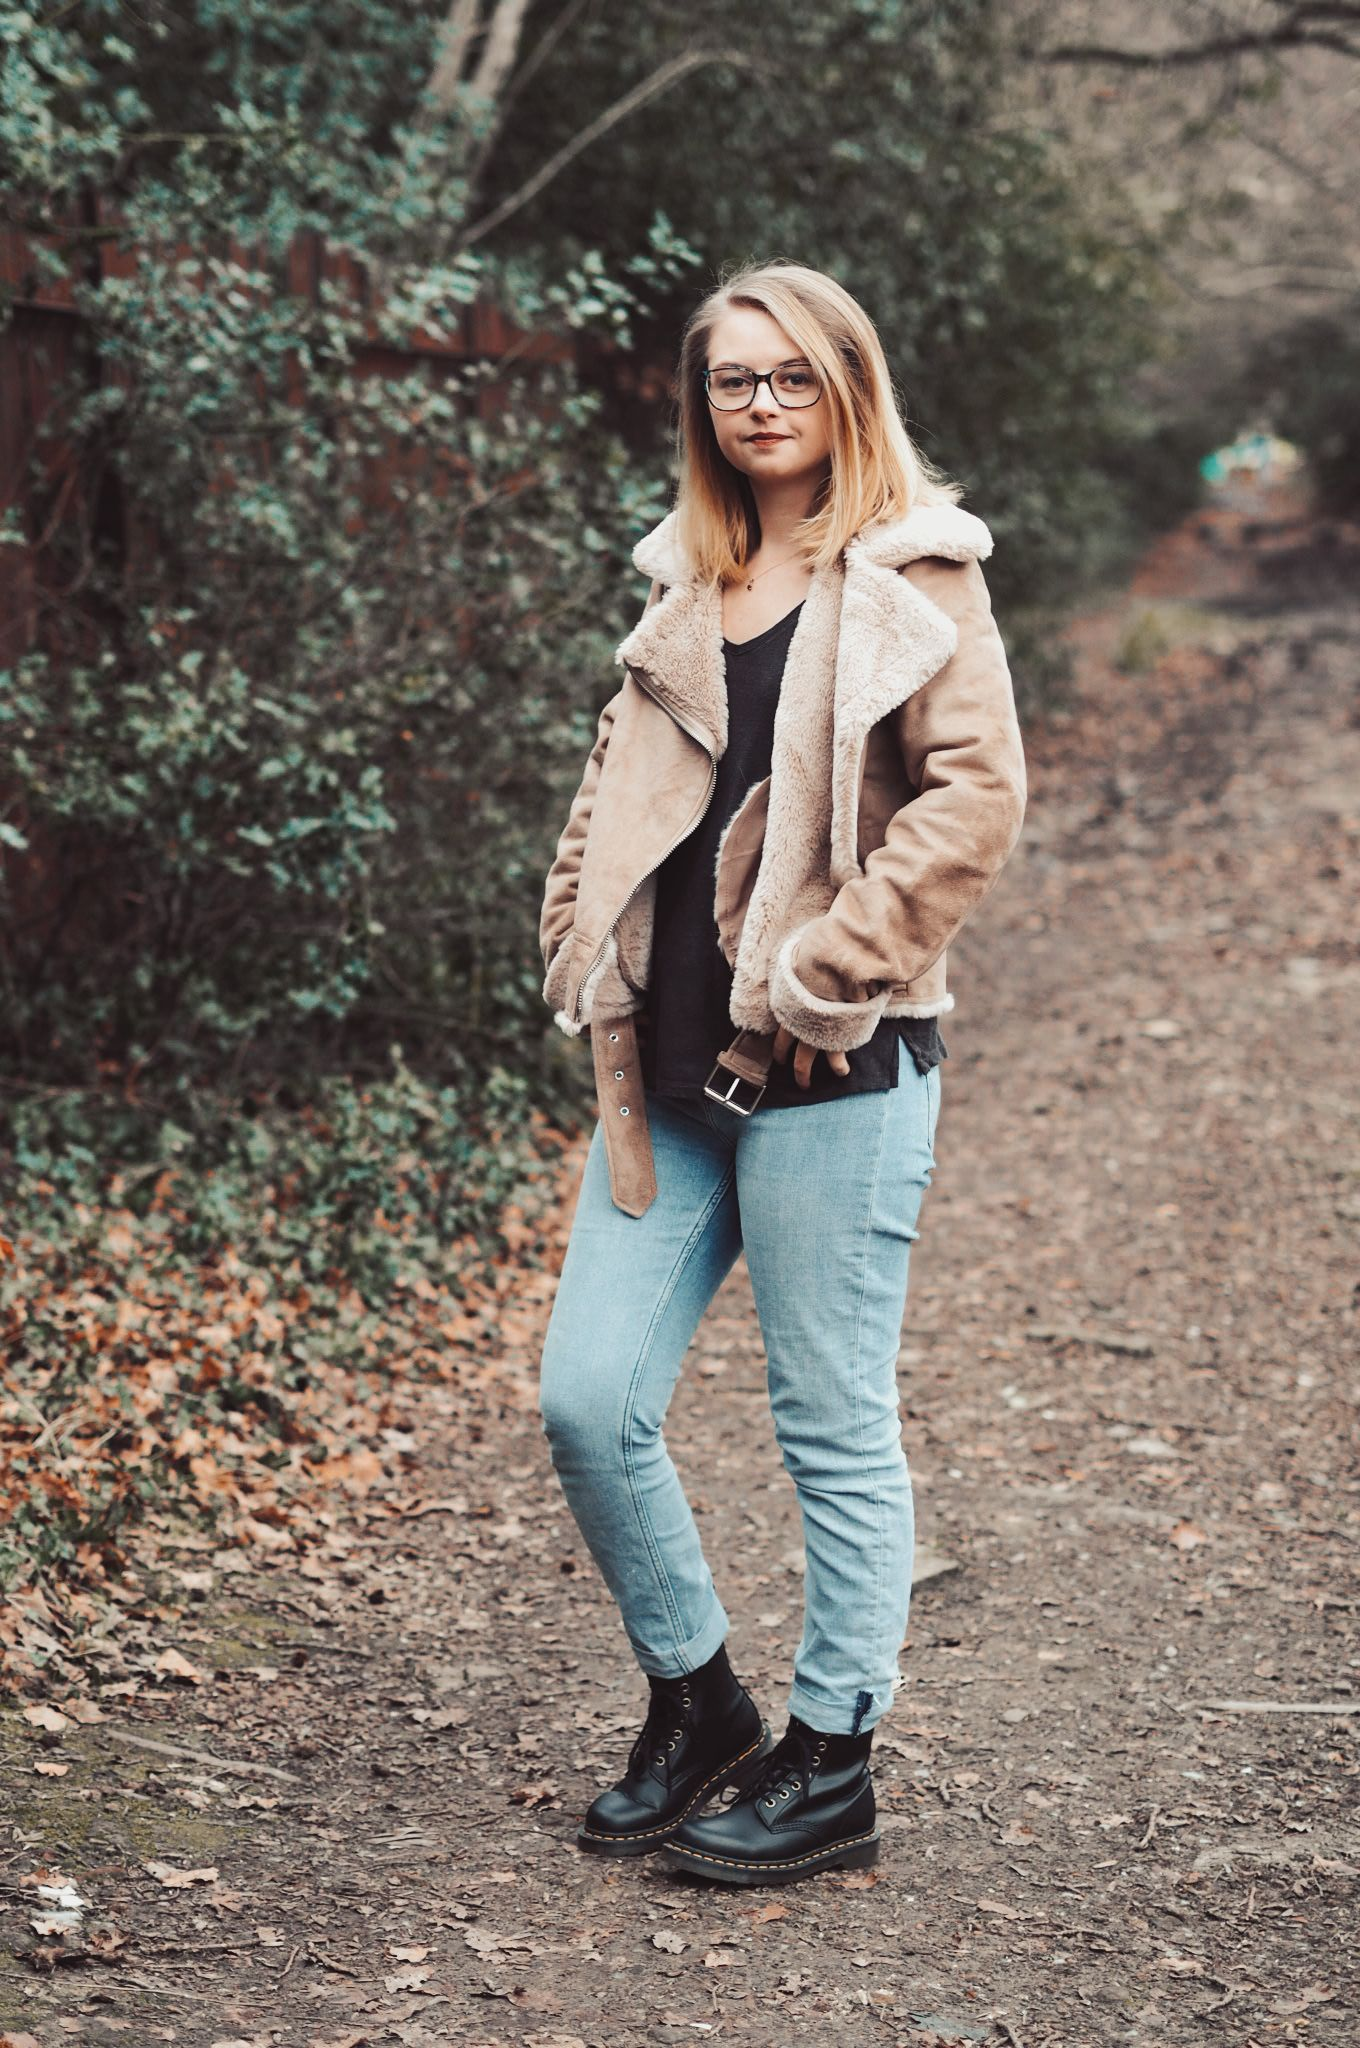 Blonde girl in light brown suede jacket in the woods, with lightwash blue jeans